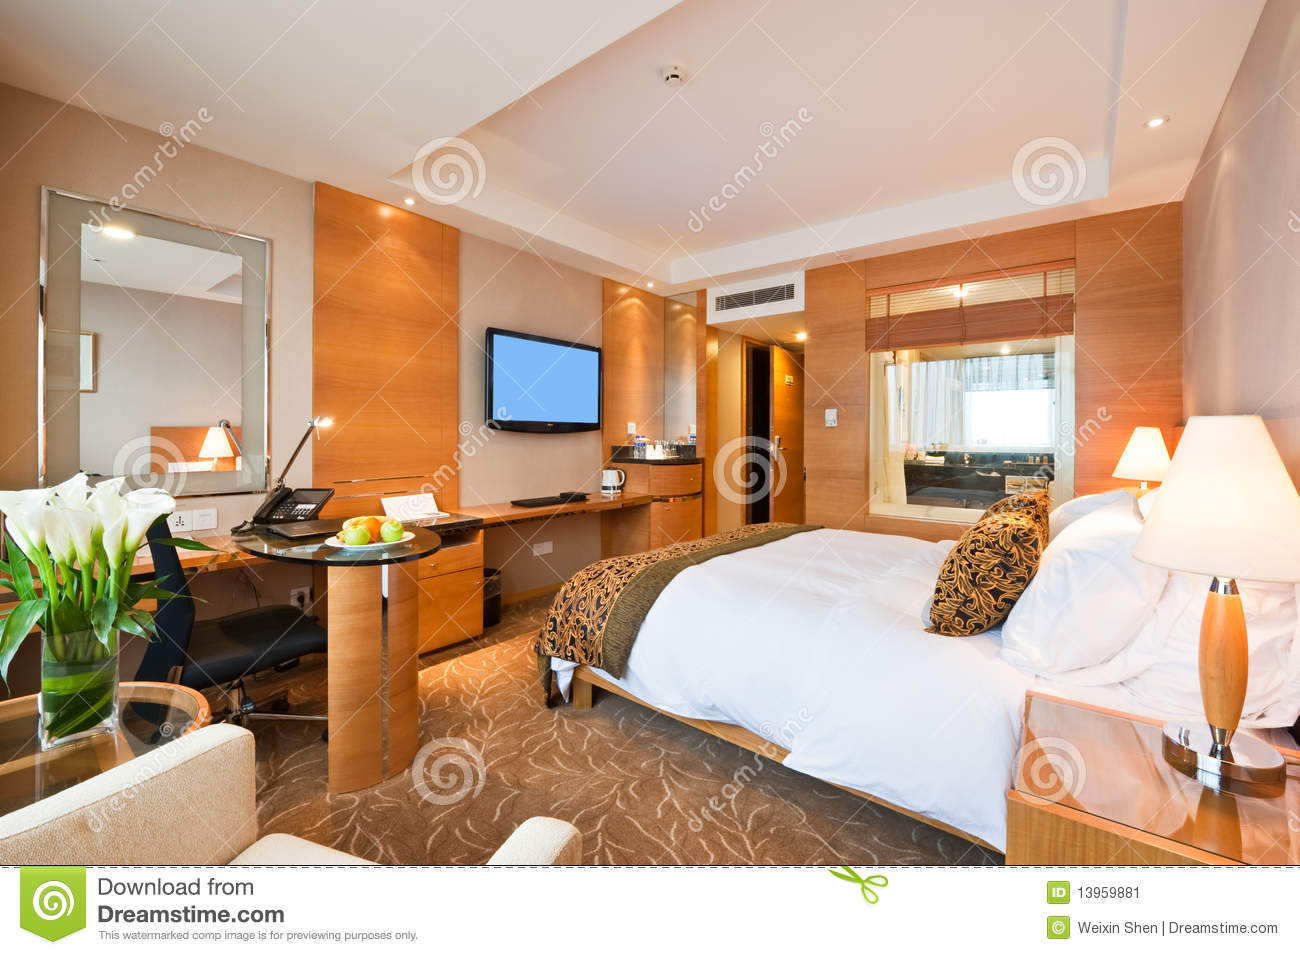 Deluxe Single Room In Hotel Stock Image Image 13959881